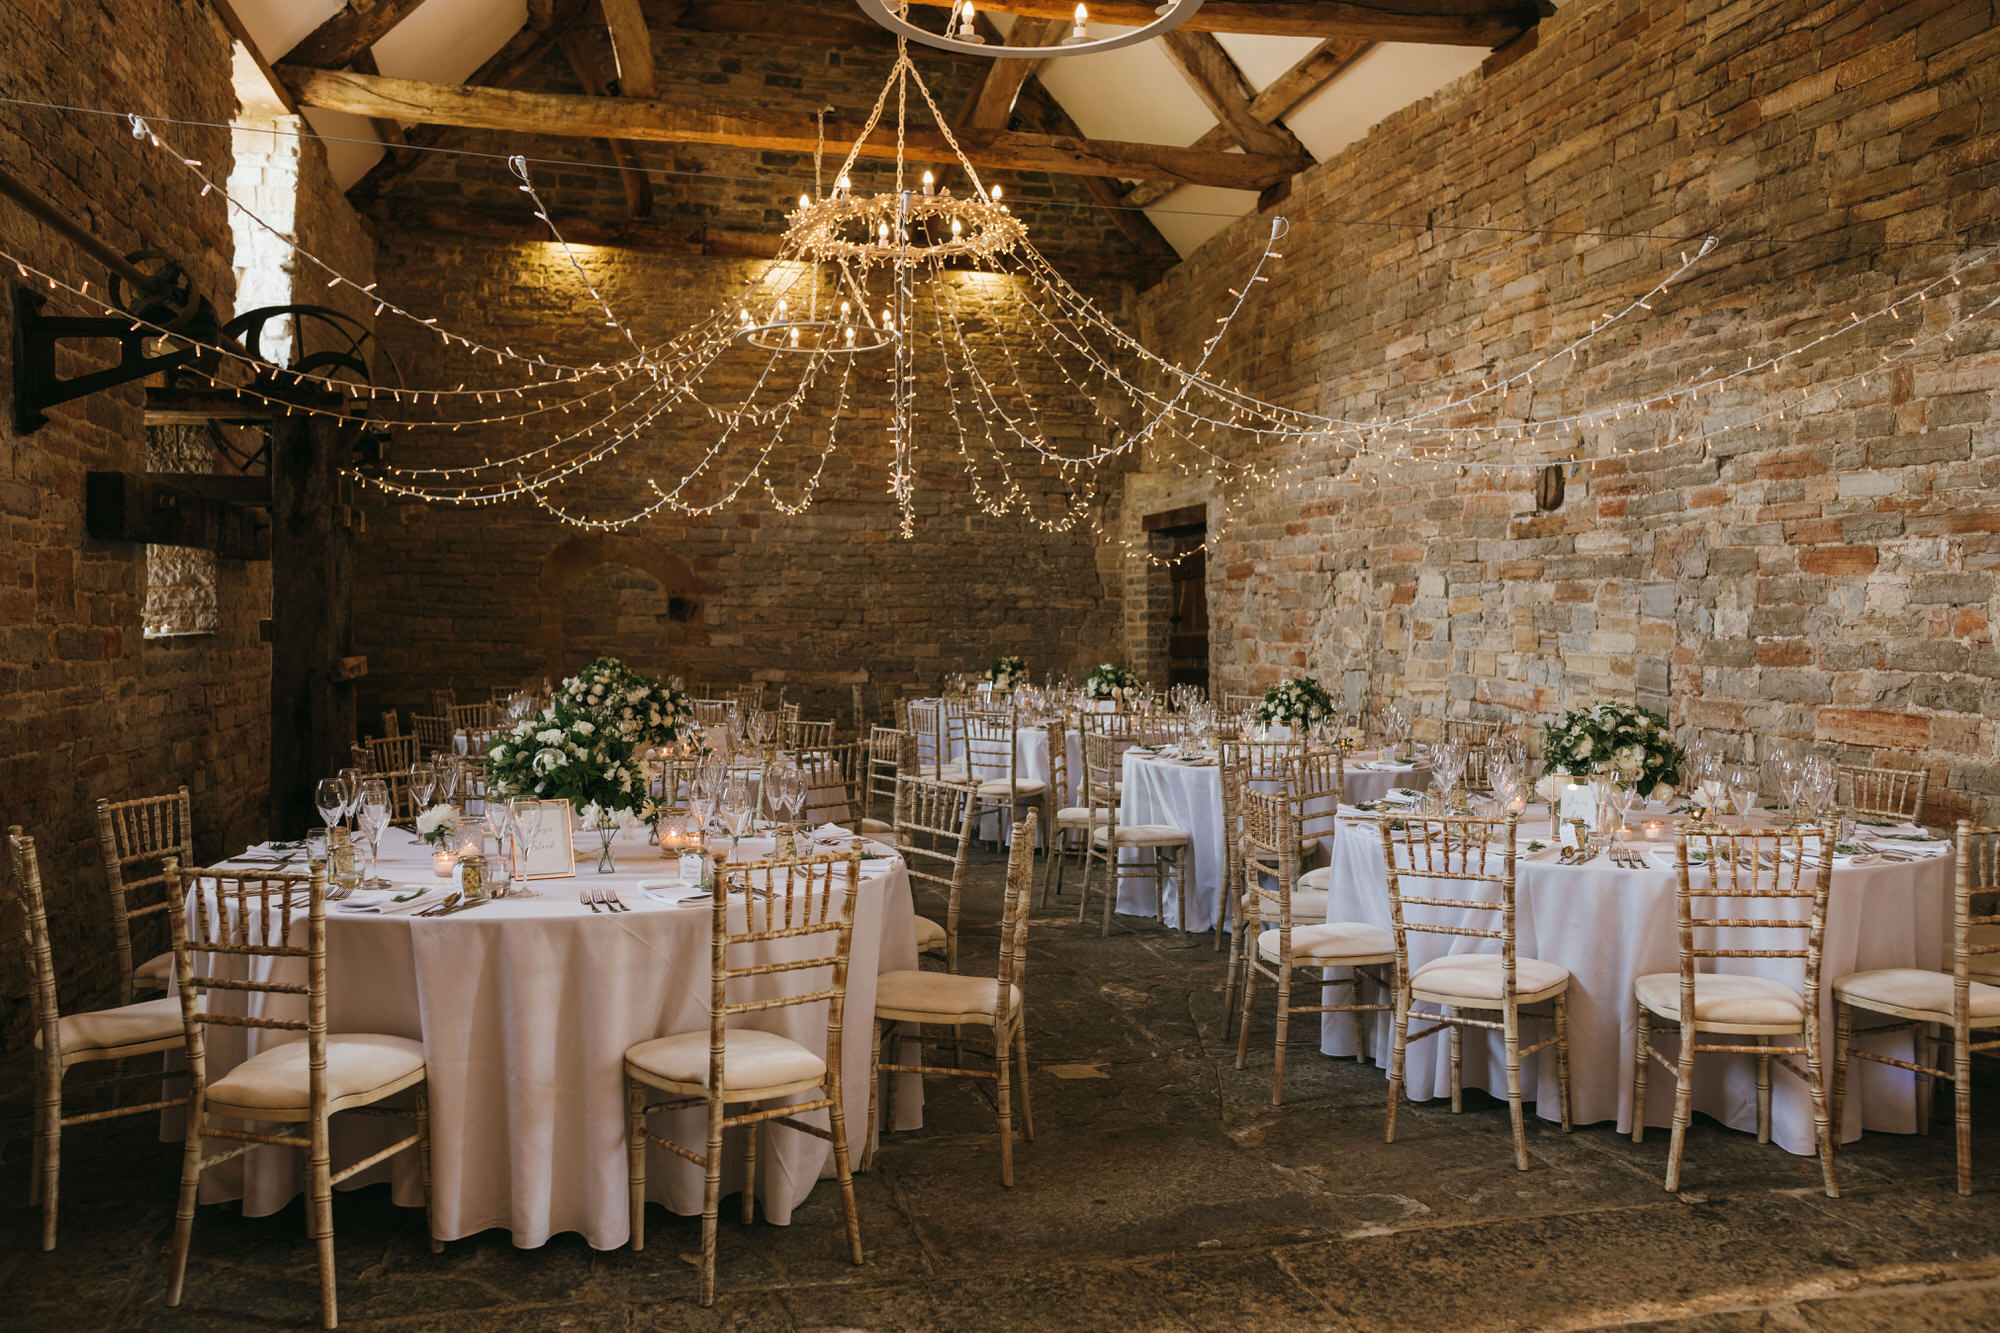 Almonry barn wedding photographer 17